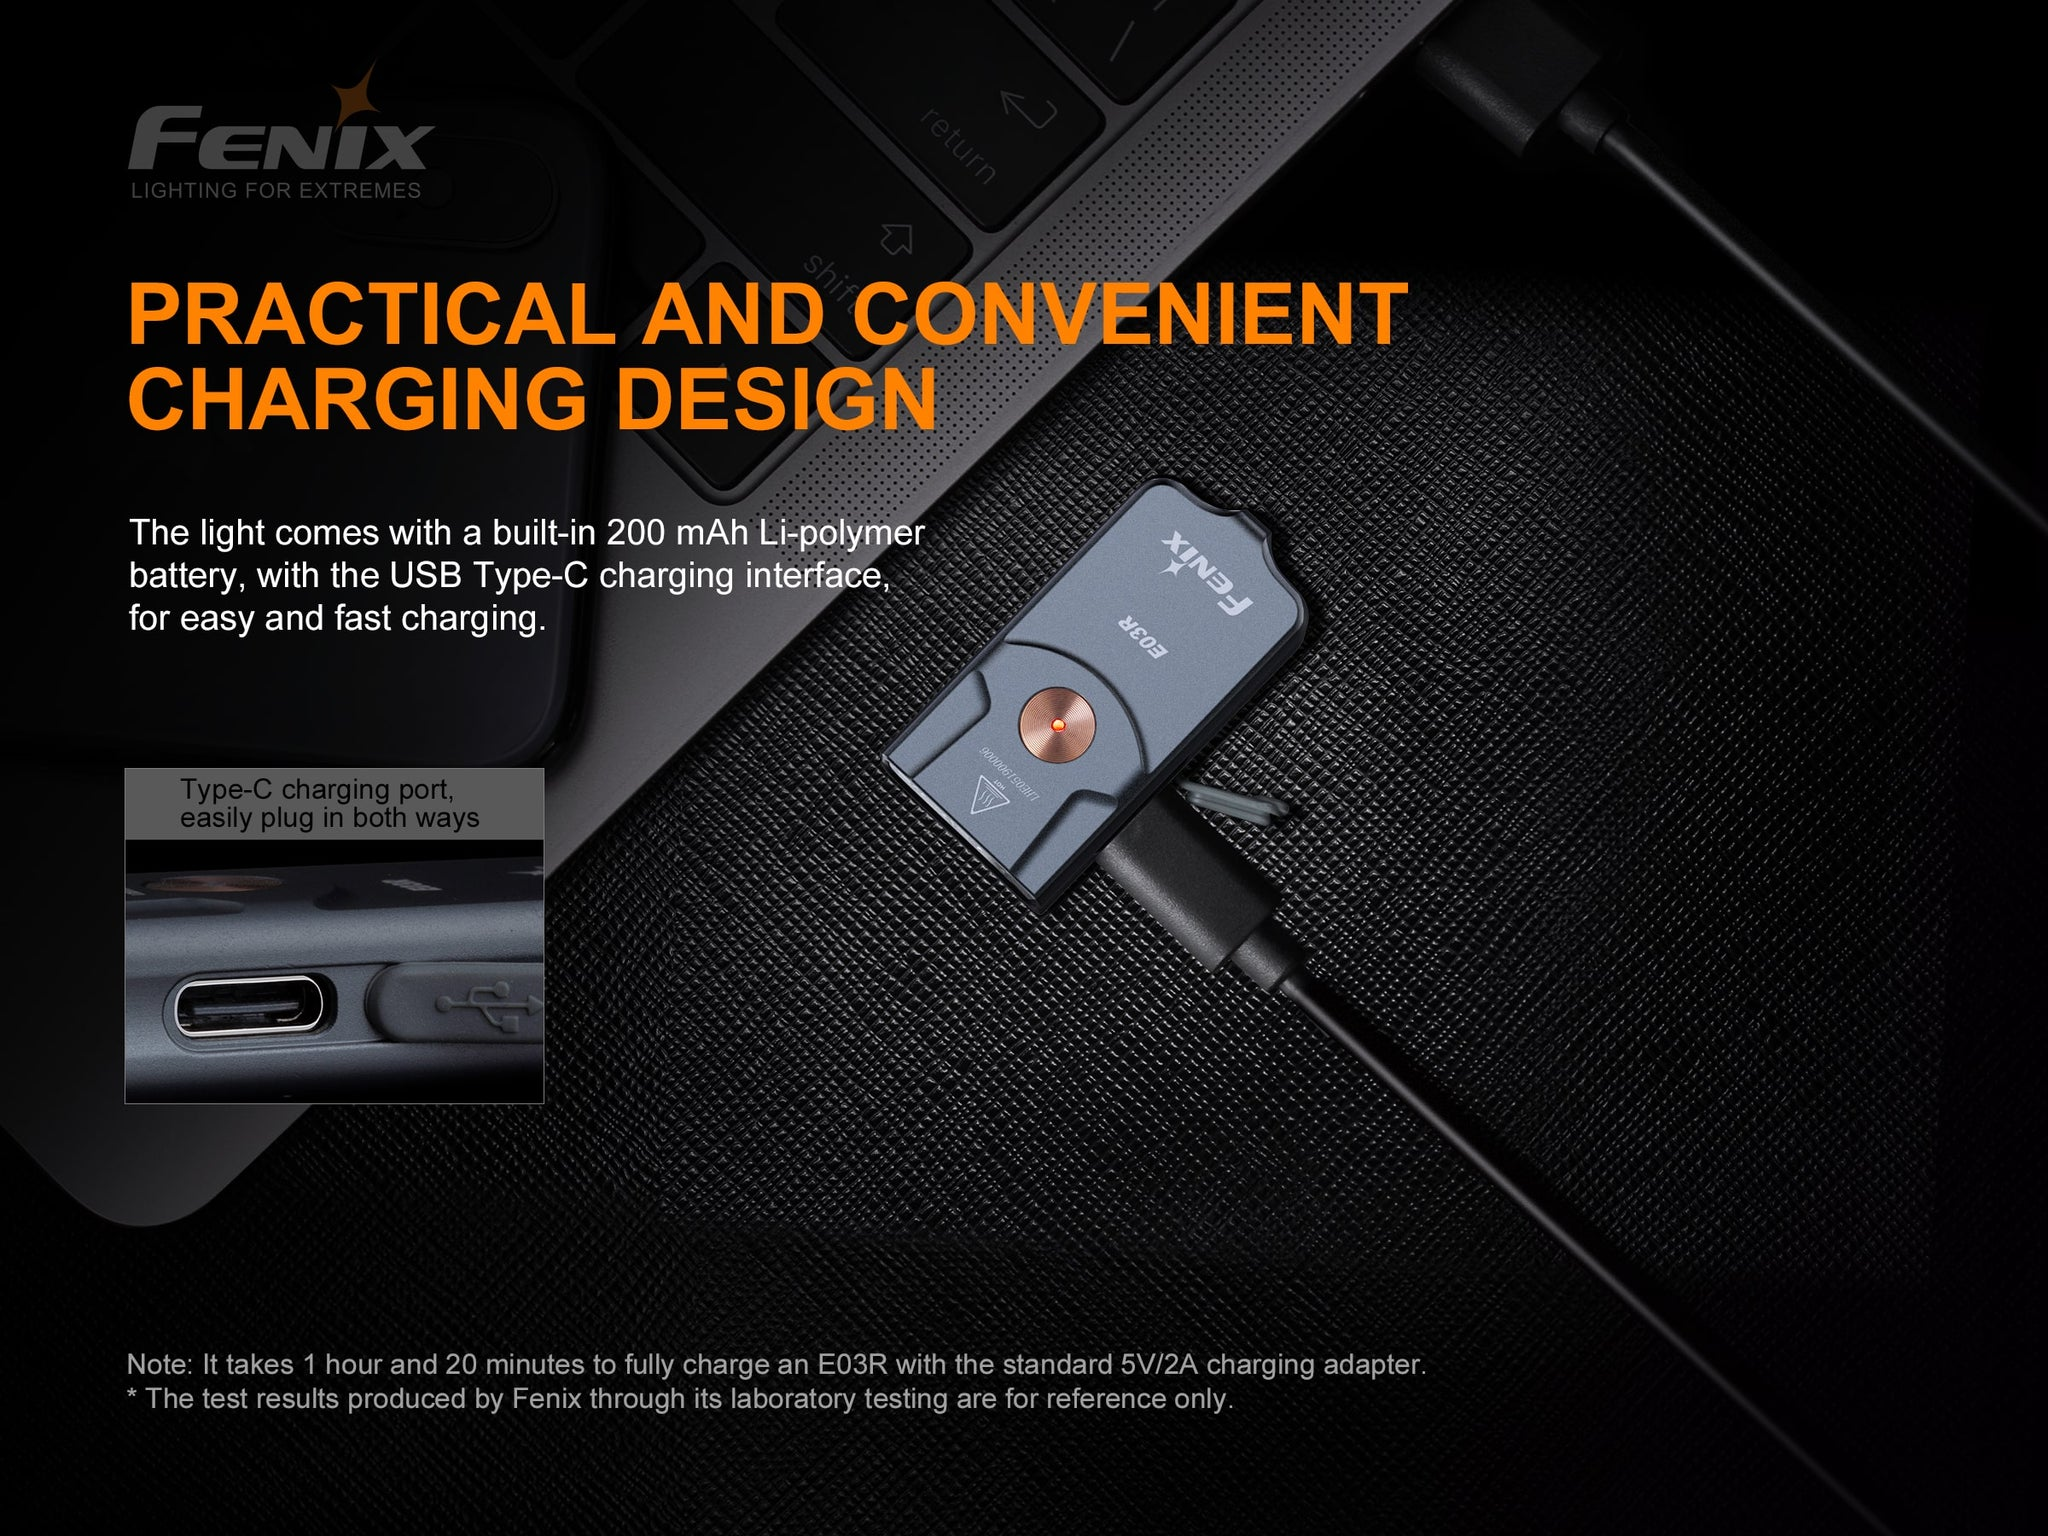 Fenix E03R Rechargeable Keychain Flashlight, Compact Key Chain Pocket Size LED Torch Light in India, Buy Mini Lights online in India at LightMen